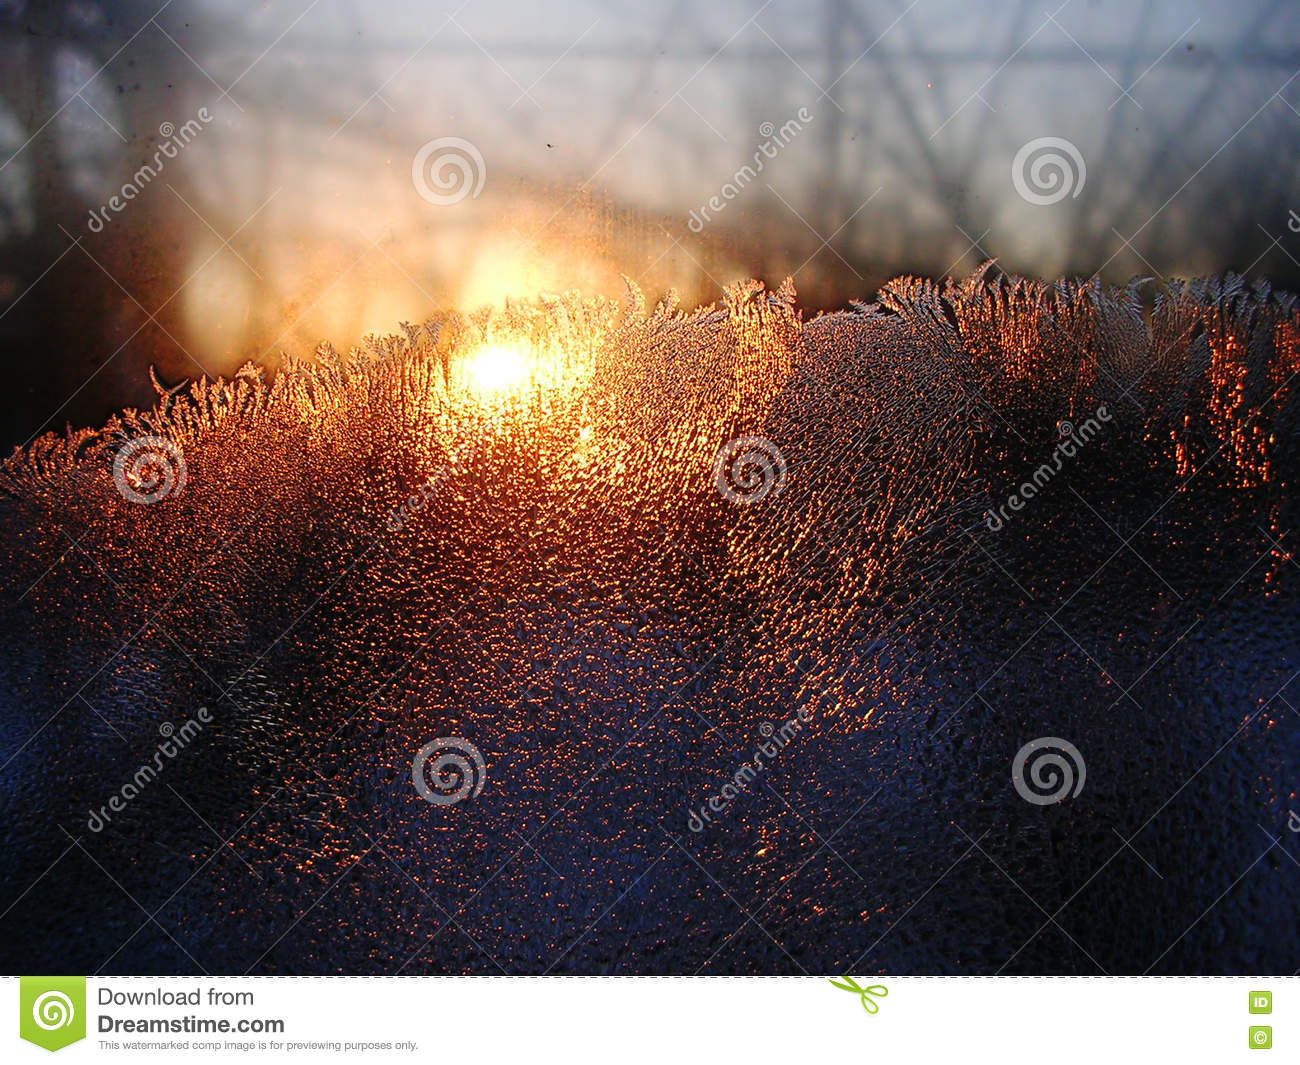 Frost ice crystals and water drops on window glass on the background of sunrise.